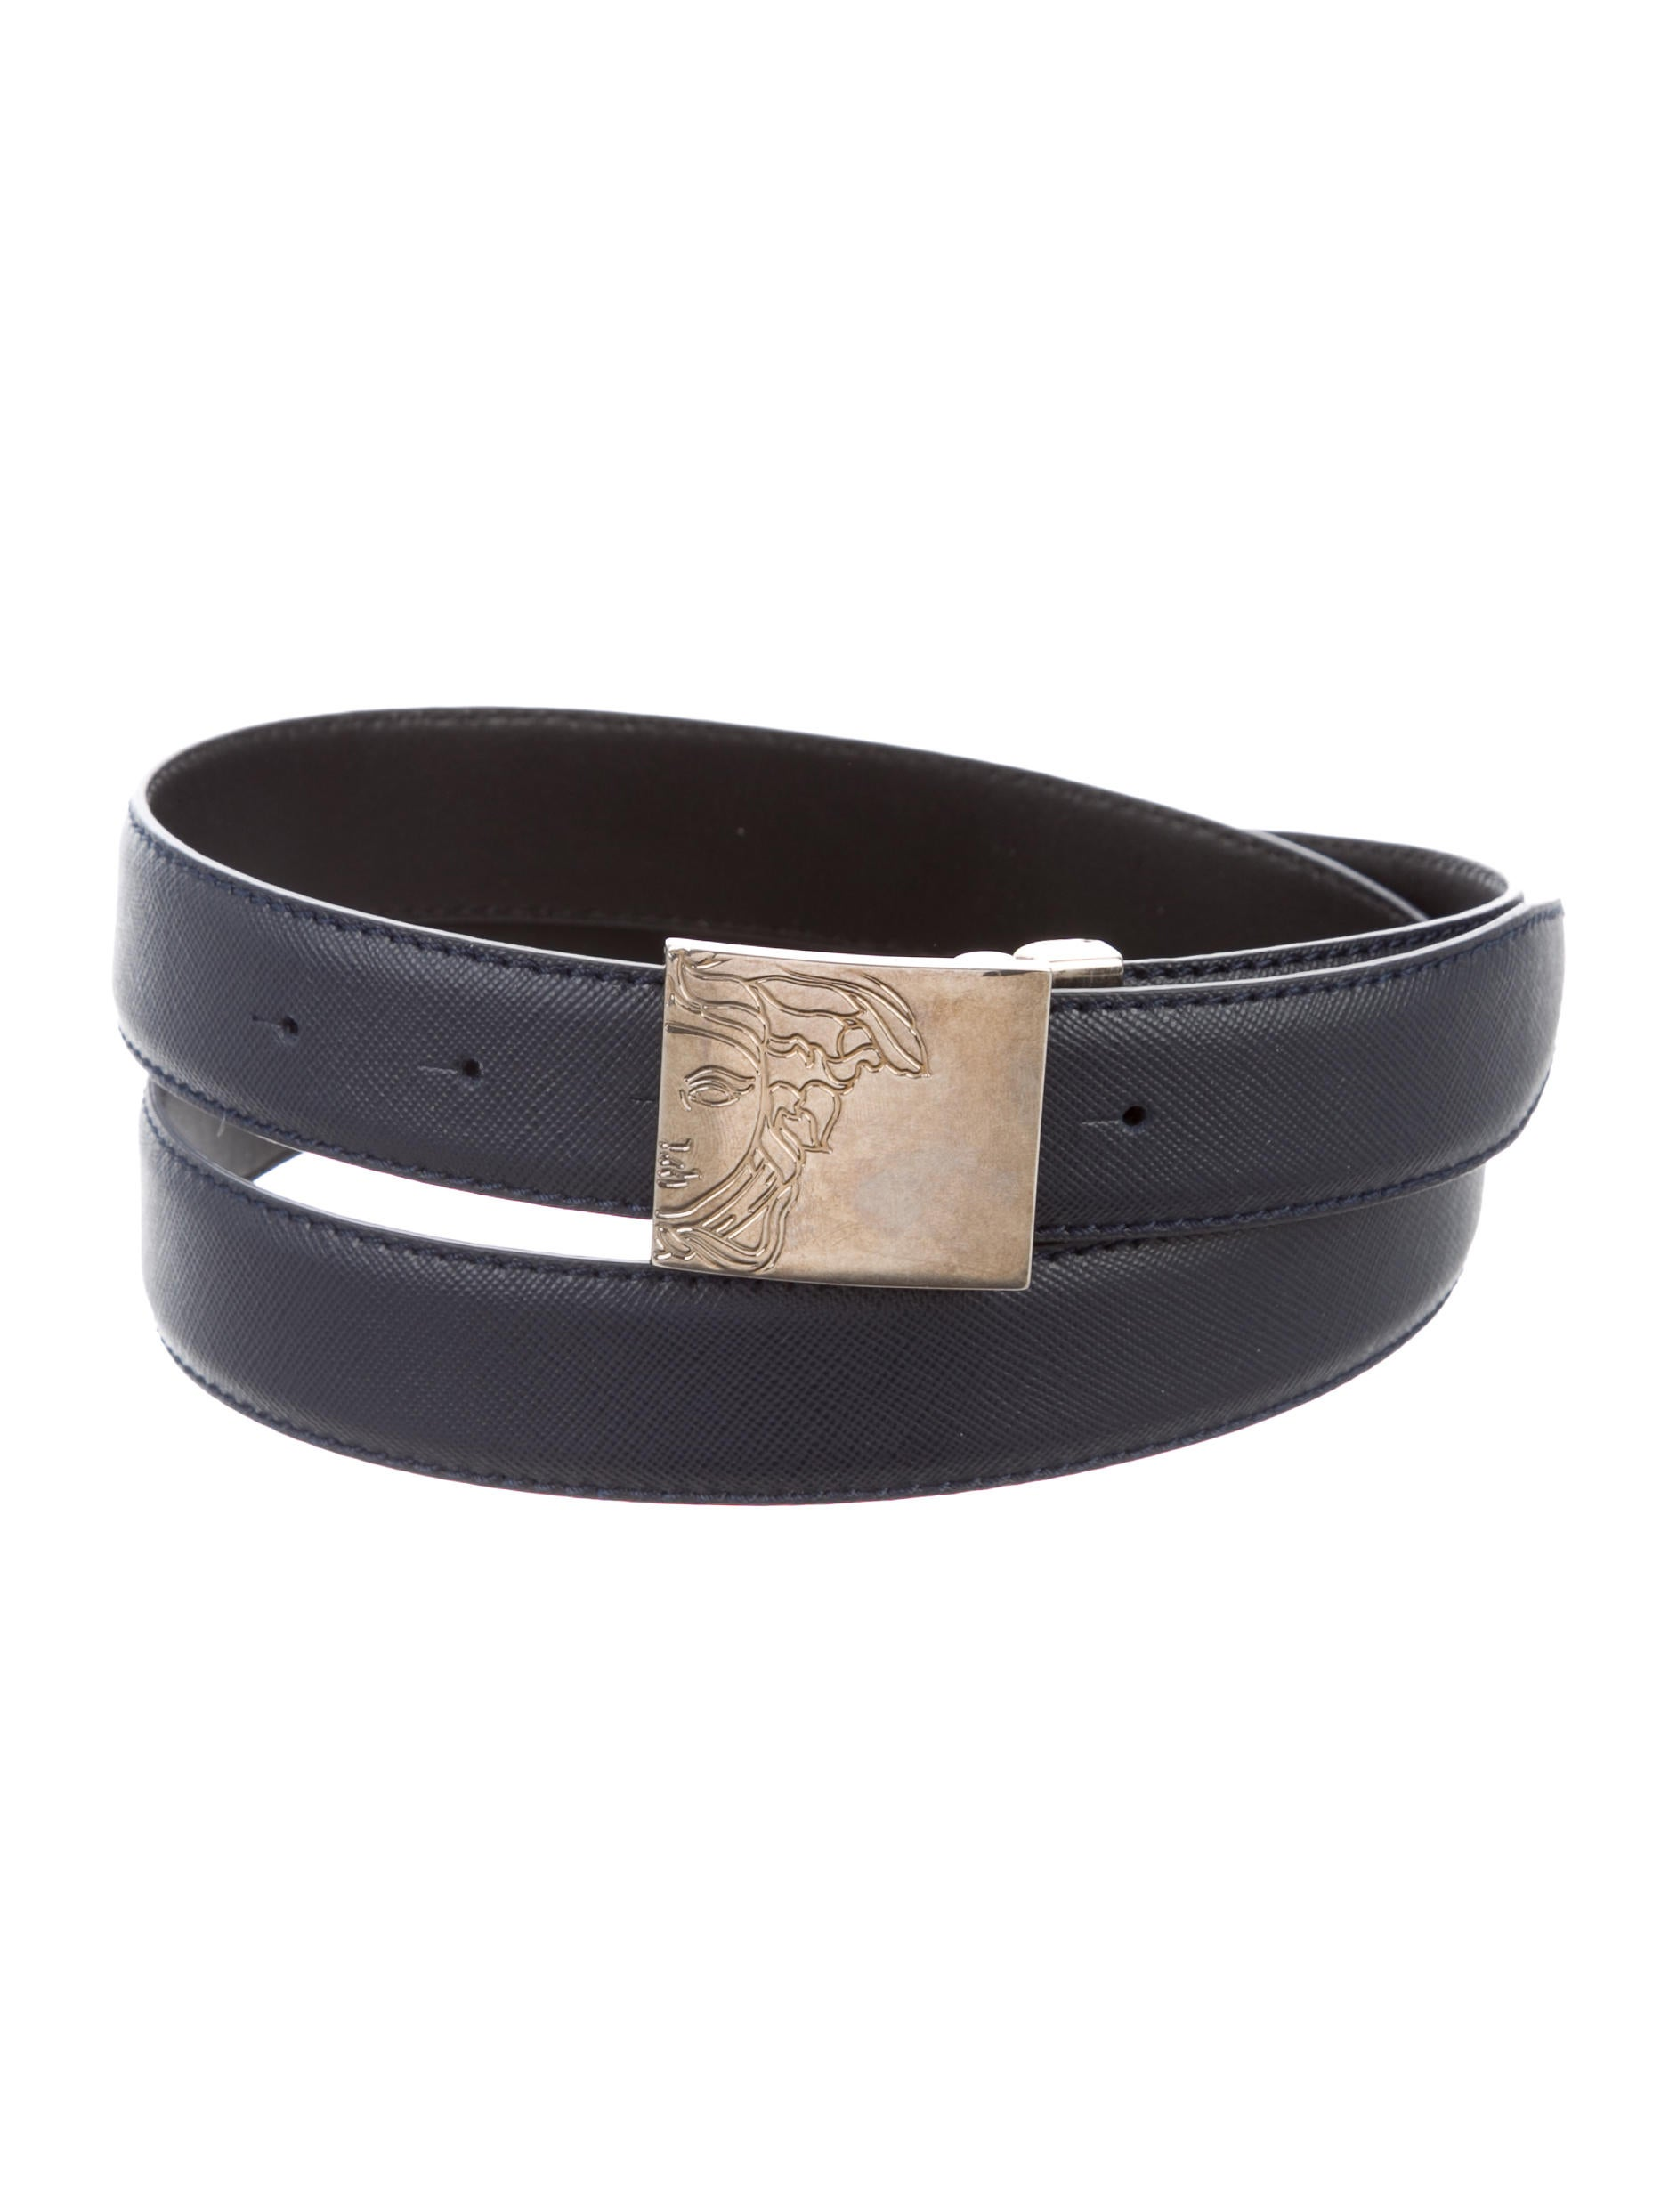 9e5510f7328f Versace Collection Leather Buckle Belt w  Tags - Accessories ...